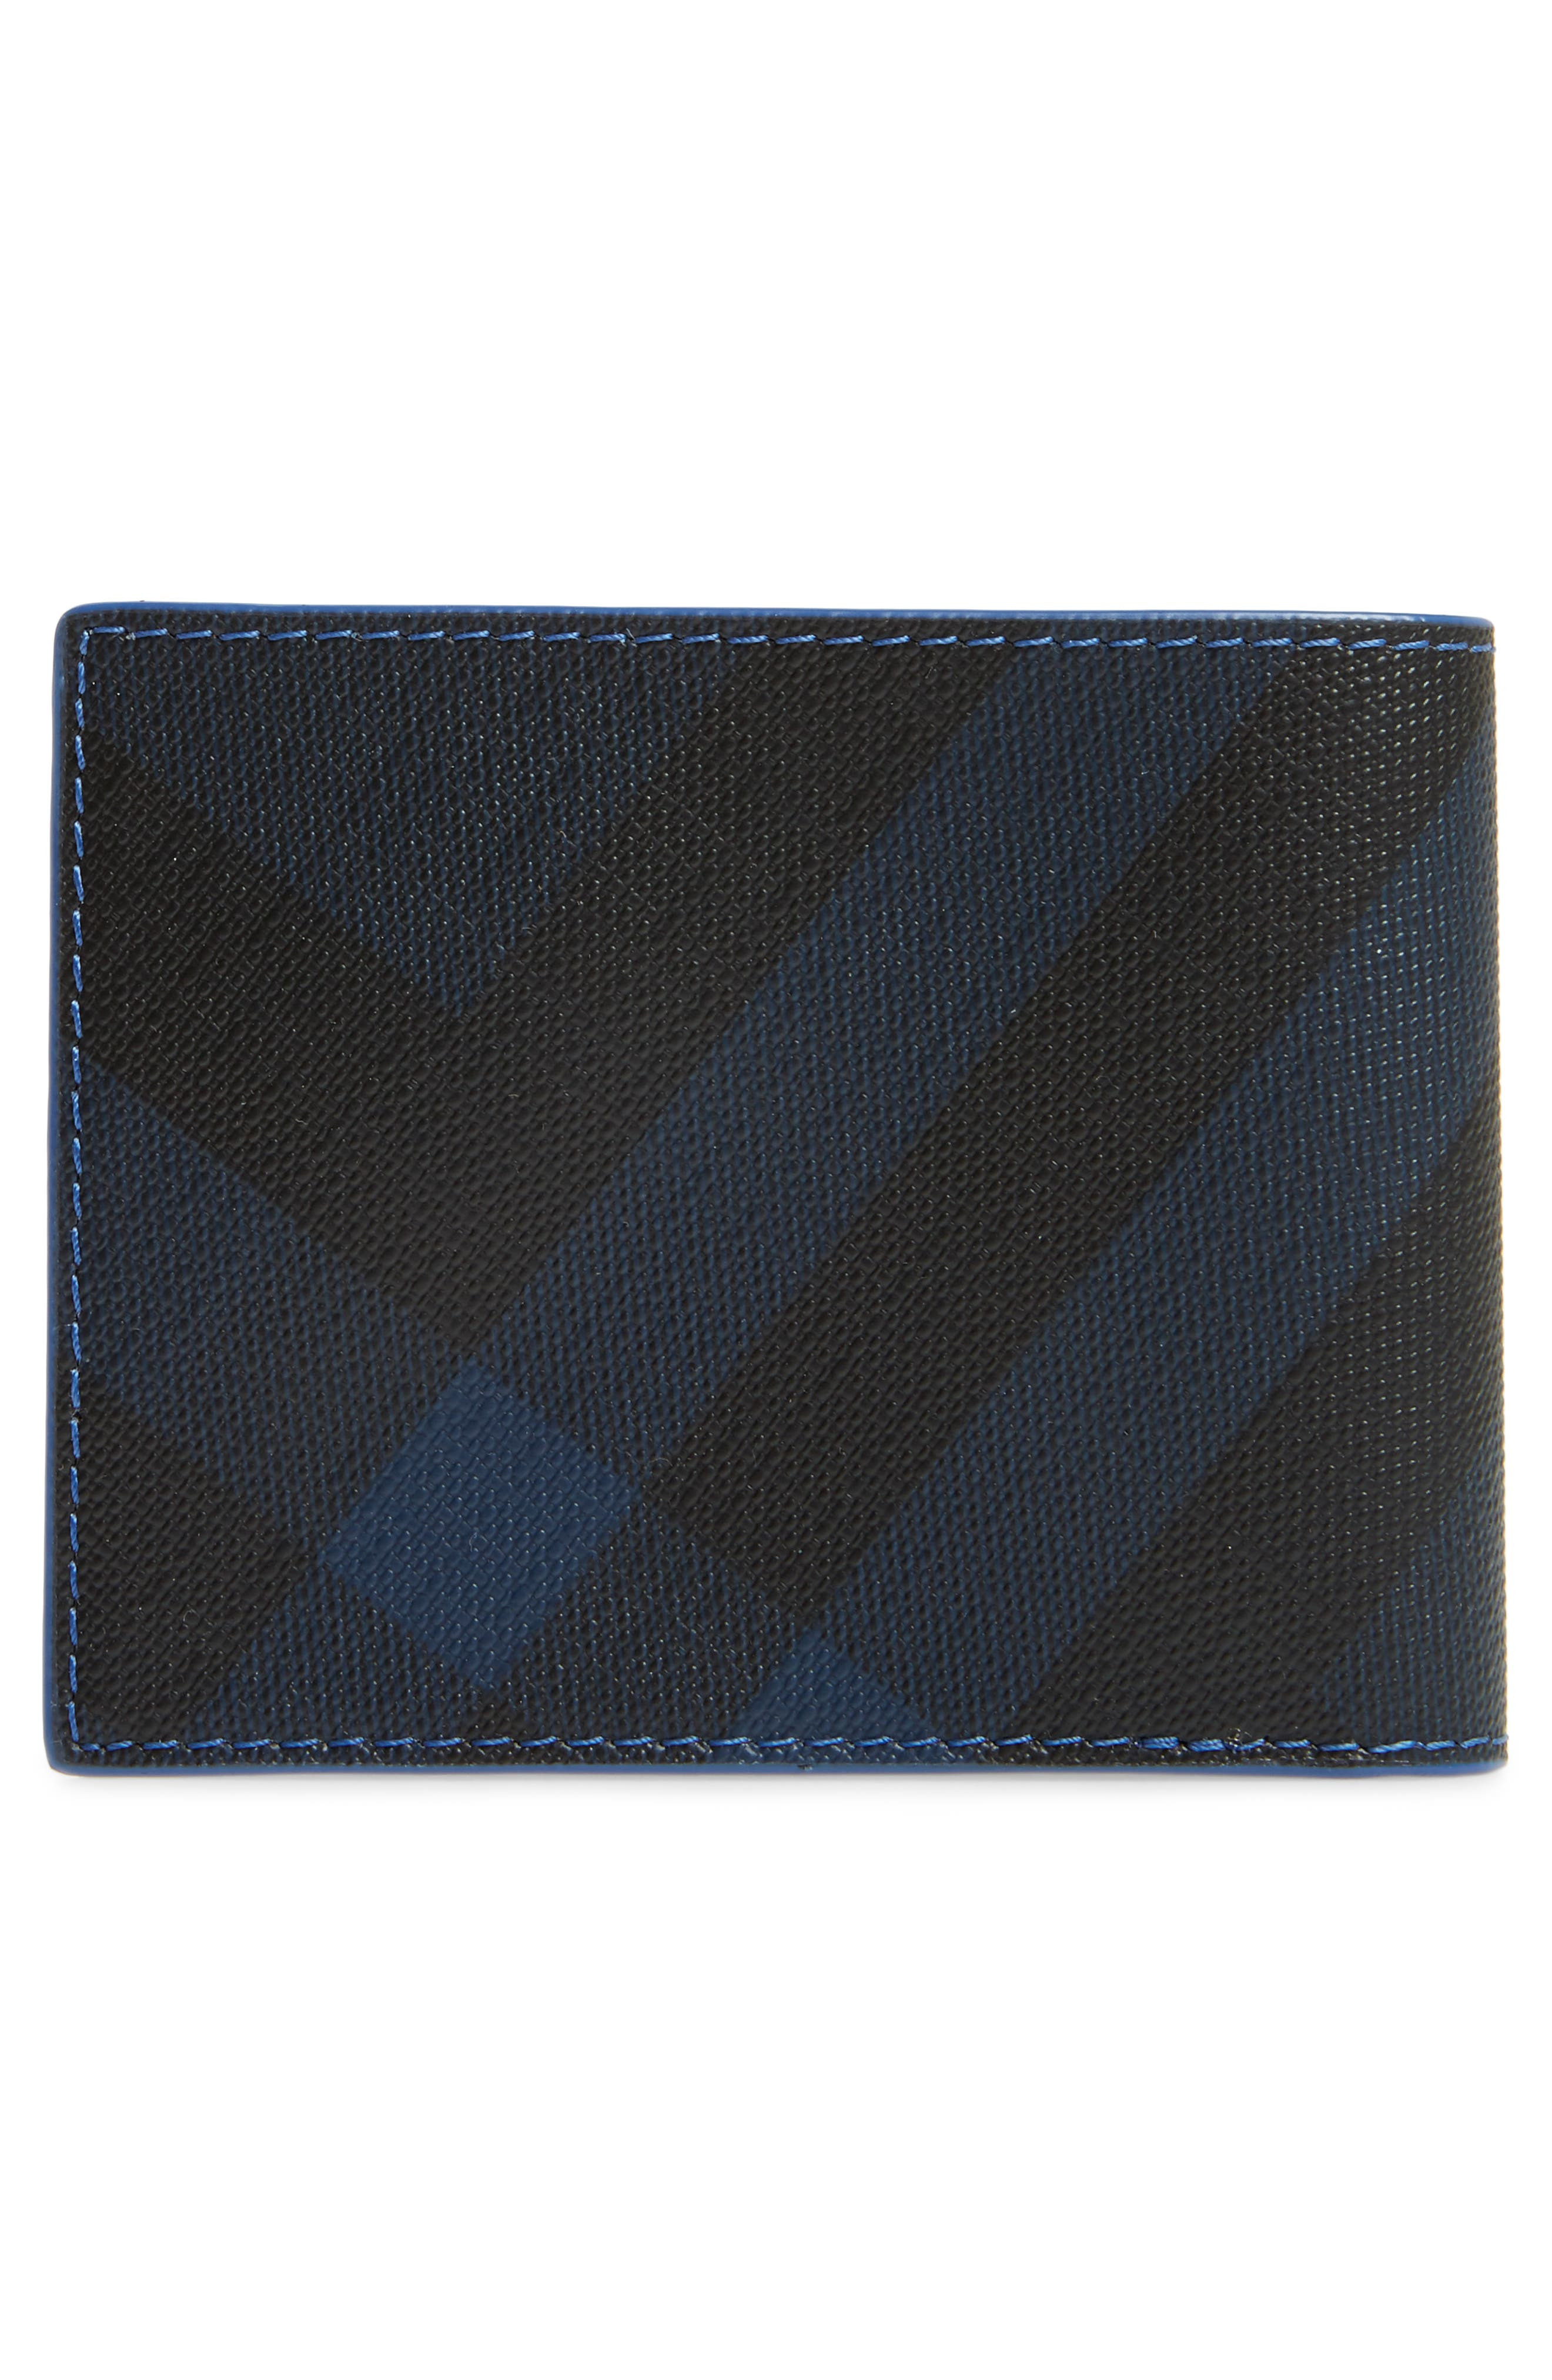 Check Faux Leather Wallet,                             Alternate thumbnail 3, color,                             Navy/ Blue